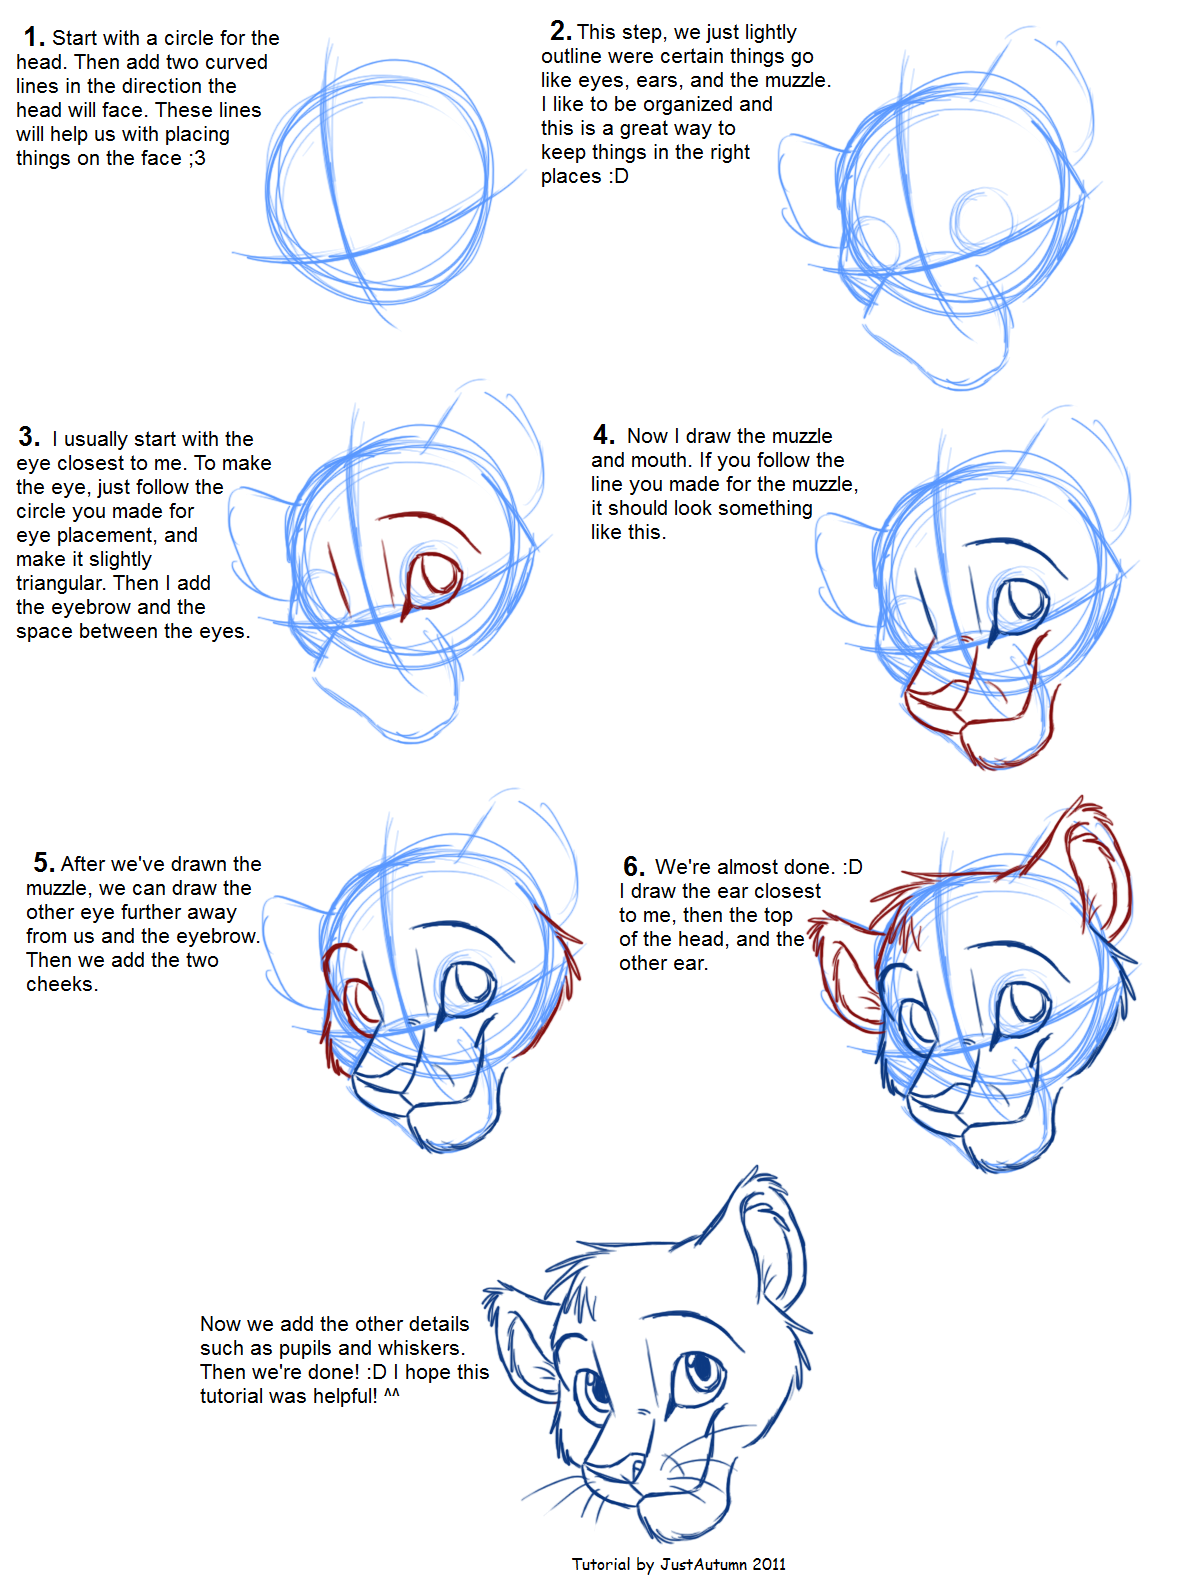 Drawing Lines With Php : How to draw head tutorial « justautumn s album — fan art